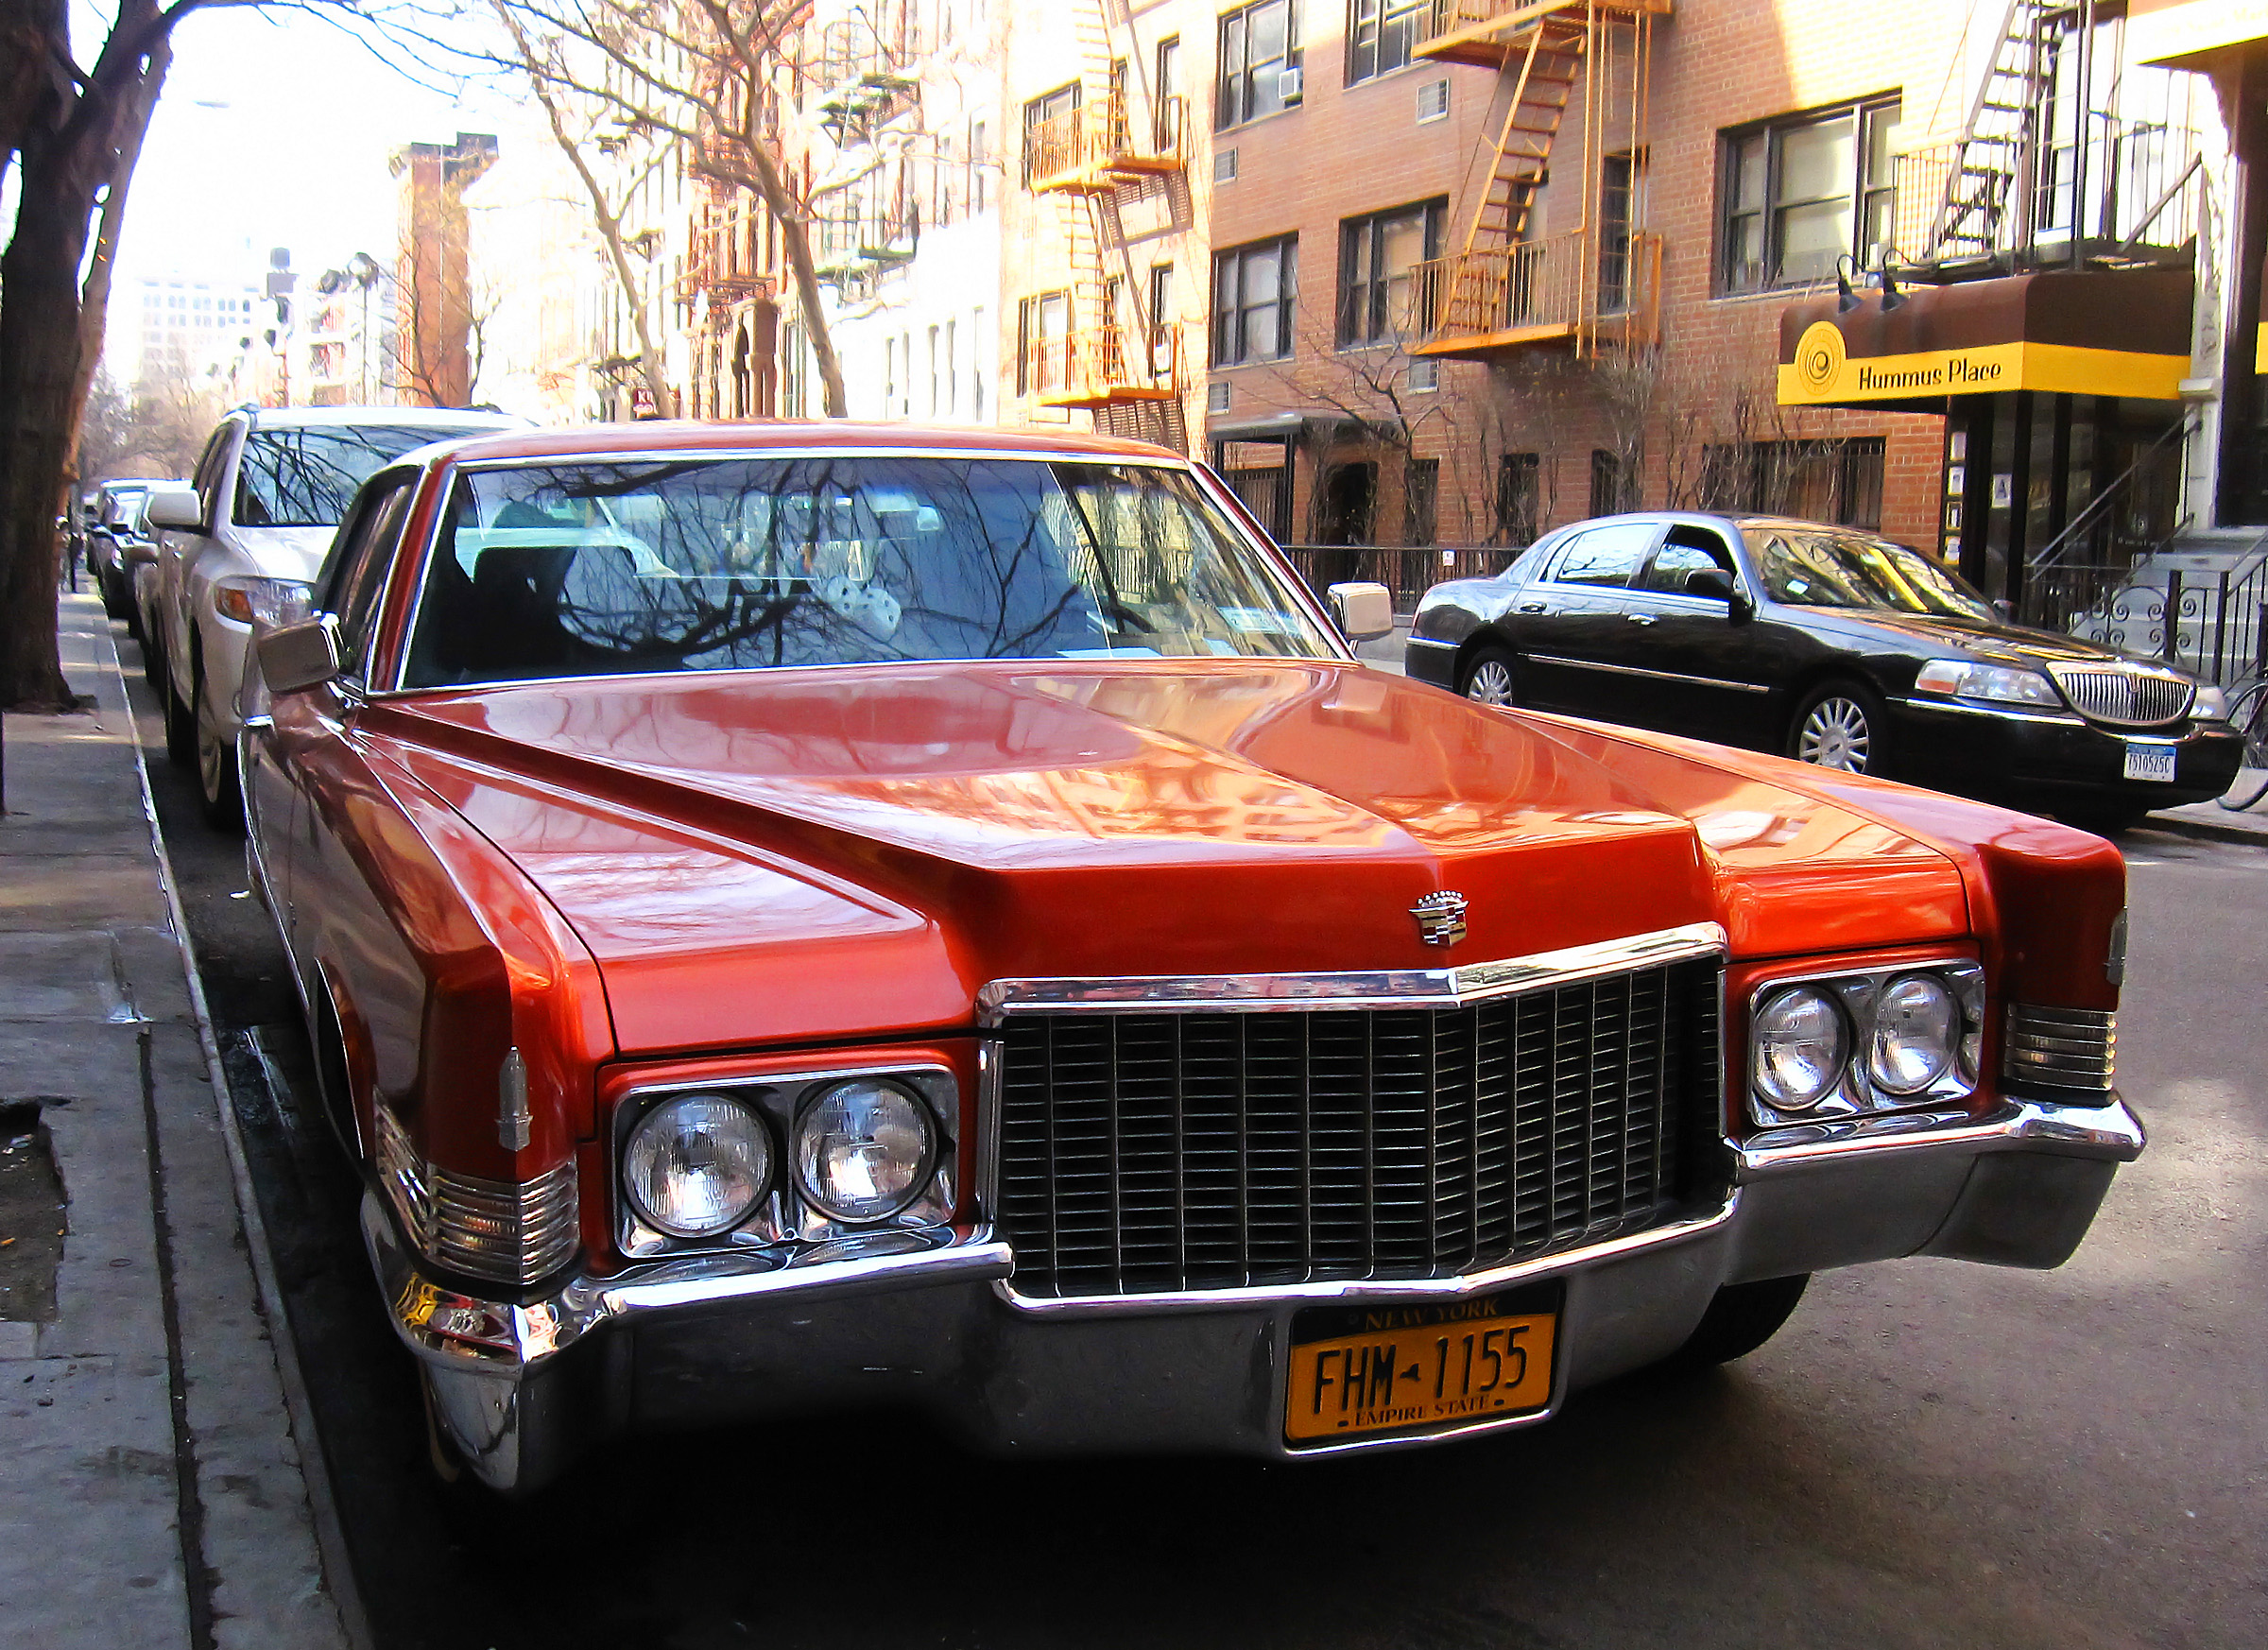 Red Caddy with dice